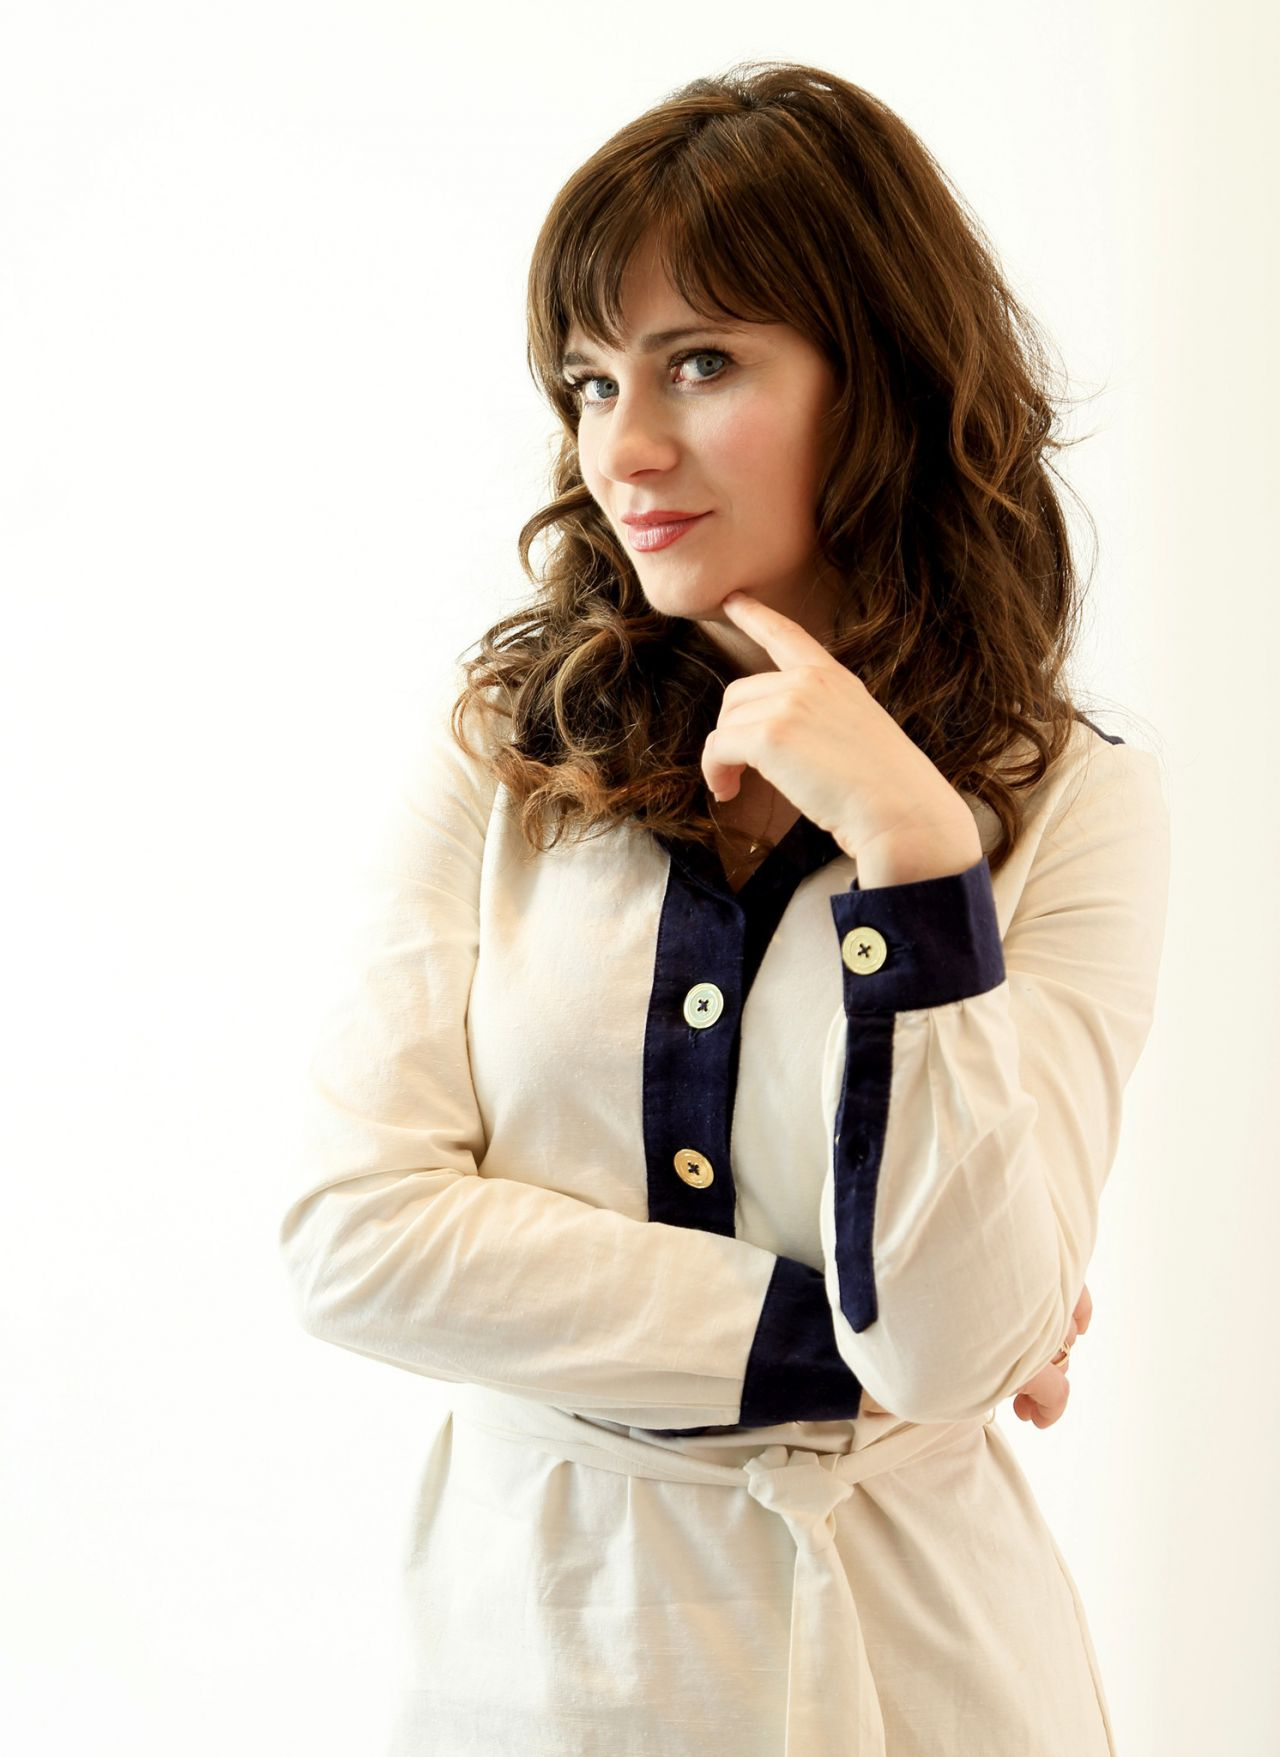 Zooey Deschanel Portrait Photoshoot Los Angeles 2014